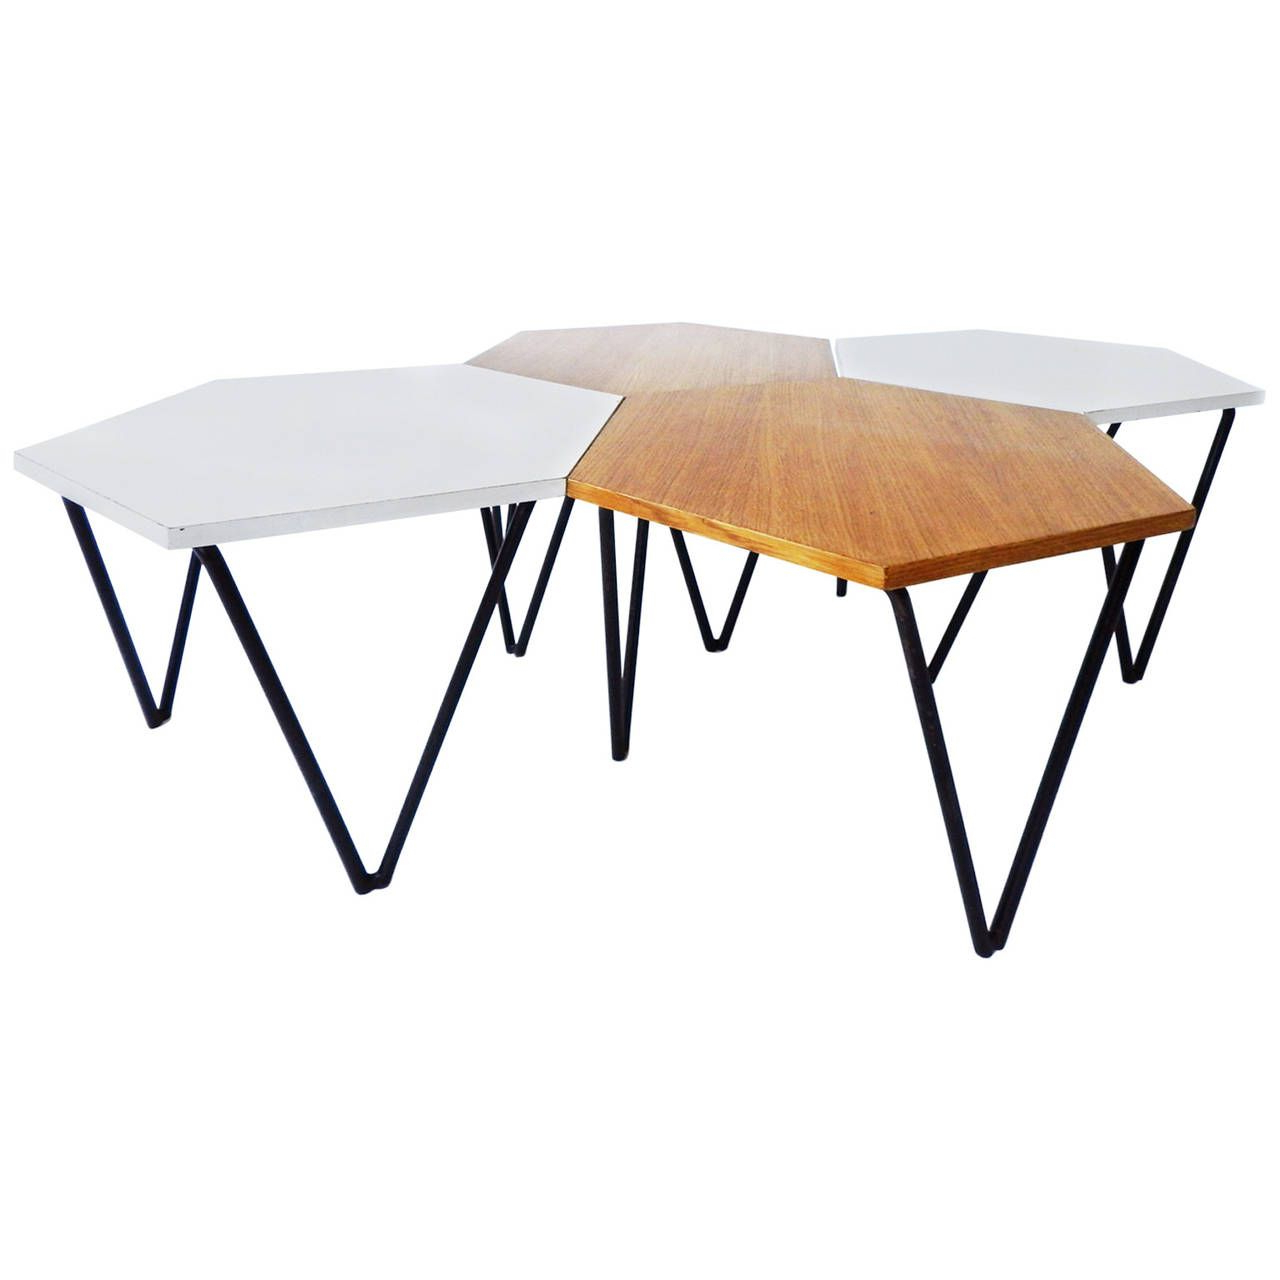 Most Up To Date Set Of 4 Gio Ponti Laminated And Wood Modular Coffee Tables For Isa For Modular Coffee Tables (View 15 of 20)